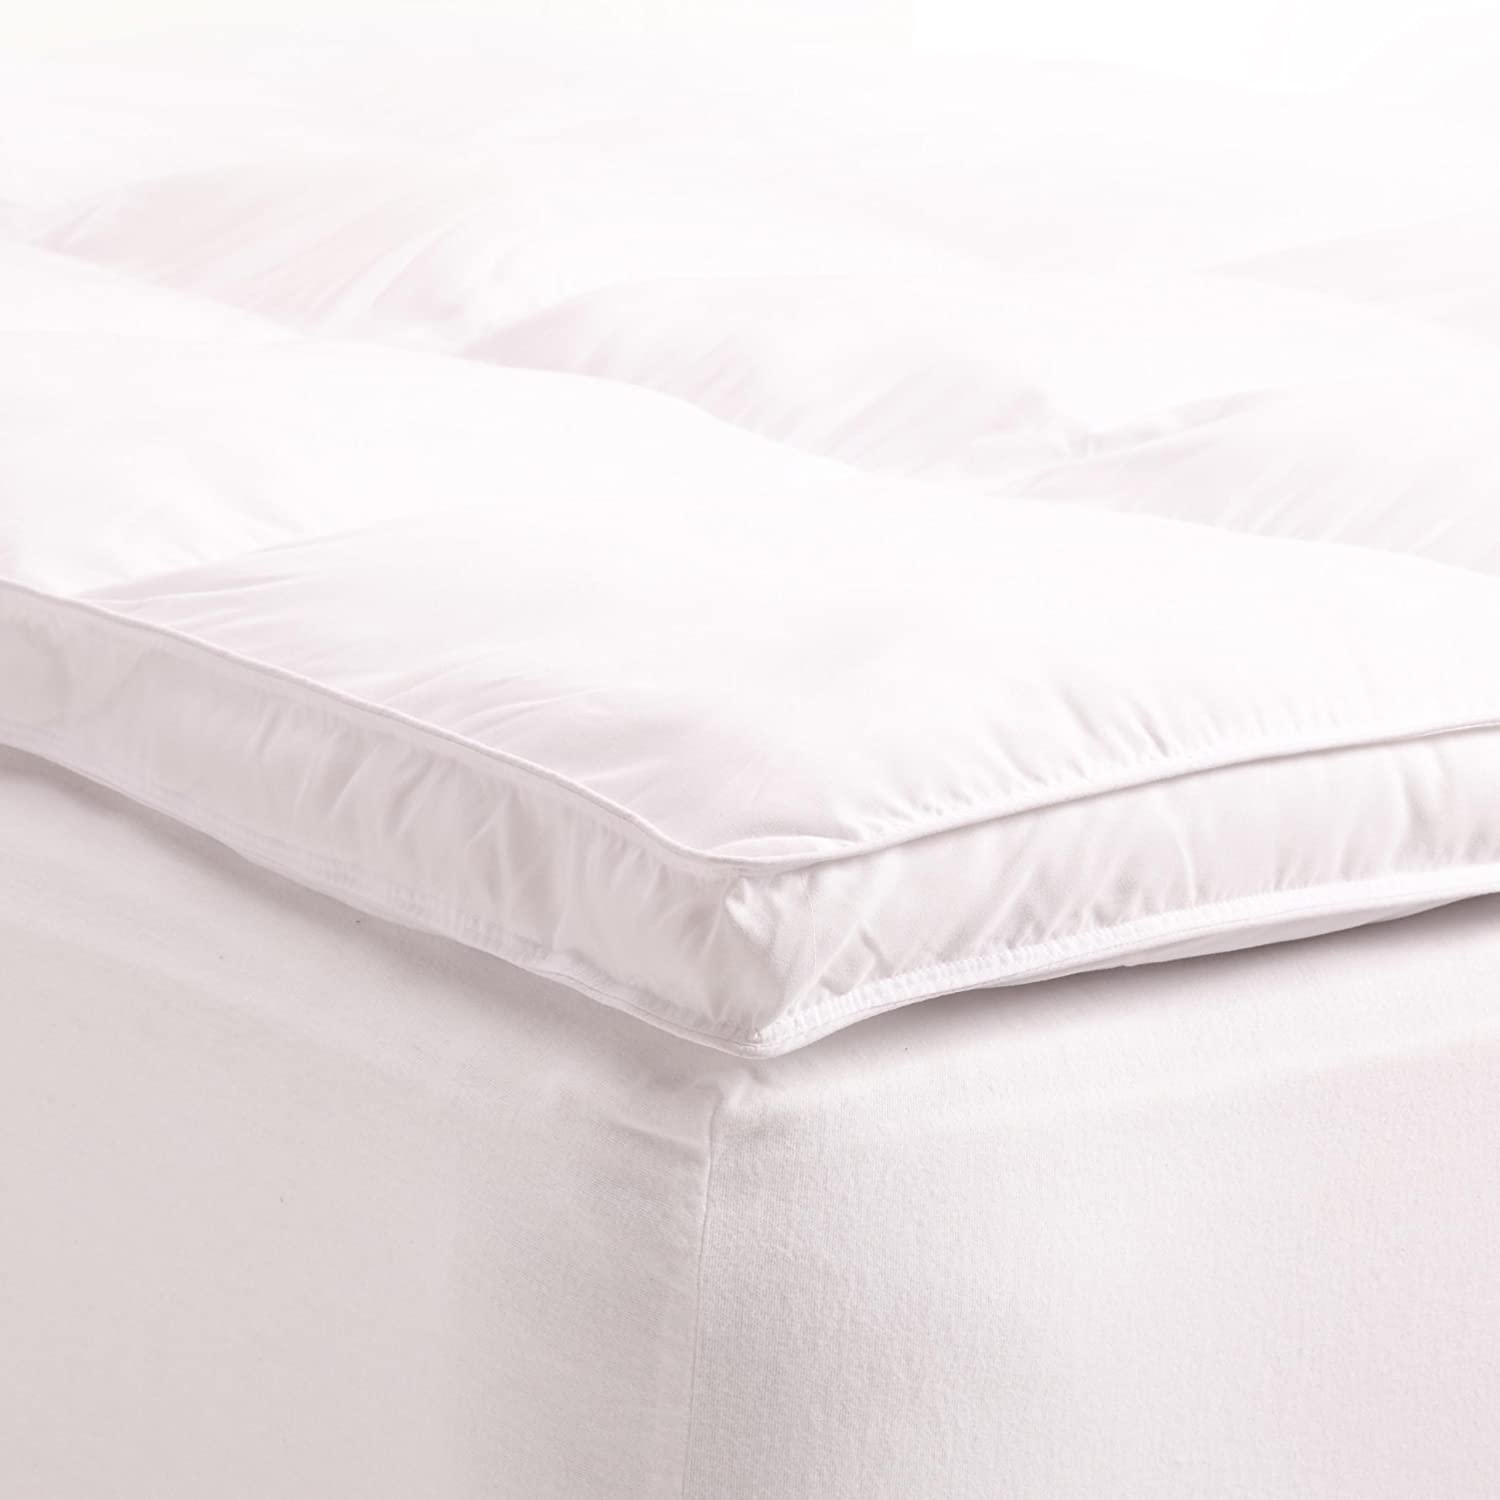 "Amazon.com: Superior Queen Mattress Topper, Hypoallergenic White Down  Alternative Featherbed Mattress Pad - Plush, Overfilled, and 2"" Thick: Home  & Kitchen"